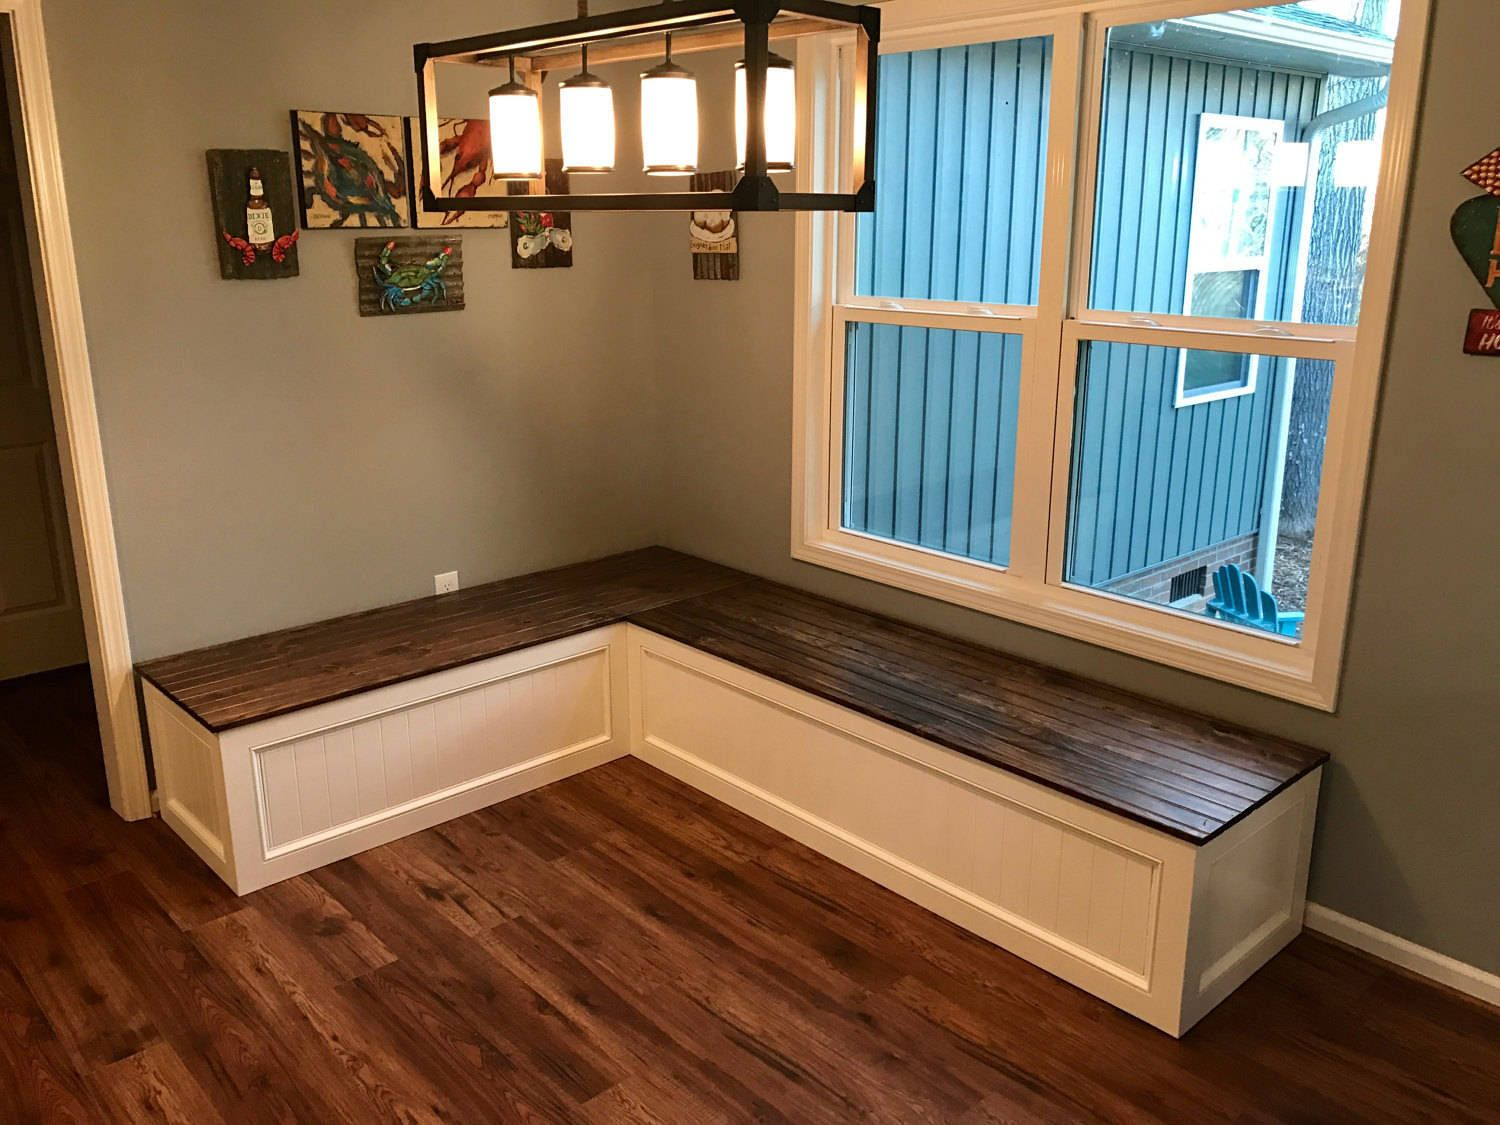 Banquette,Corner bench,kitchen seating,L shaped bench